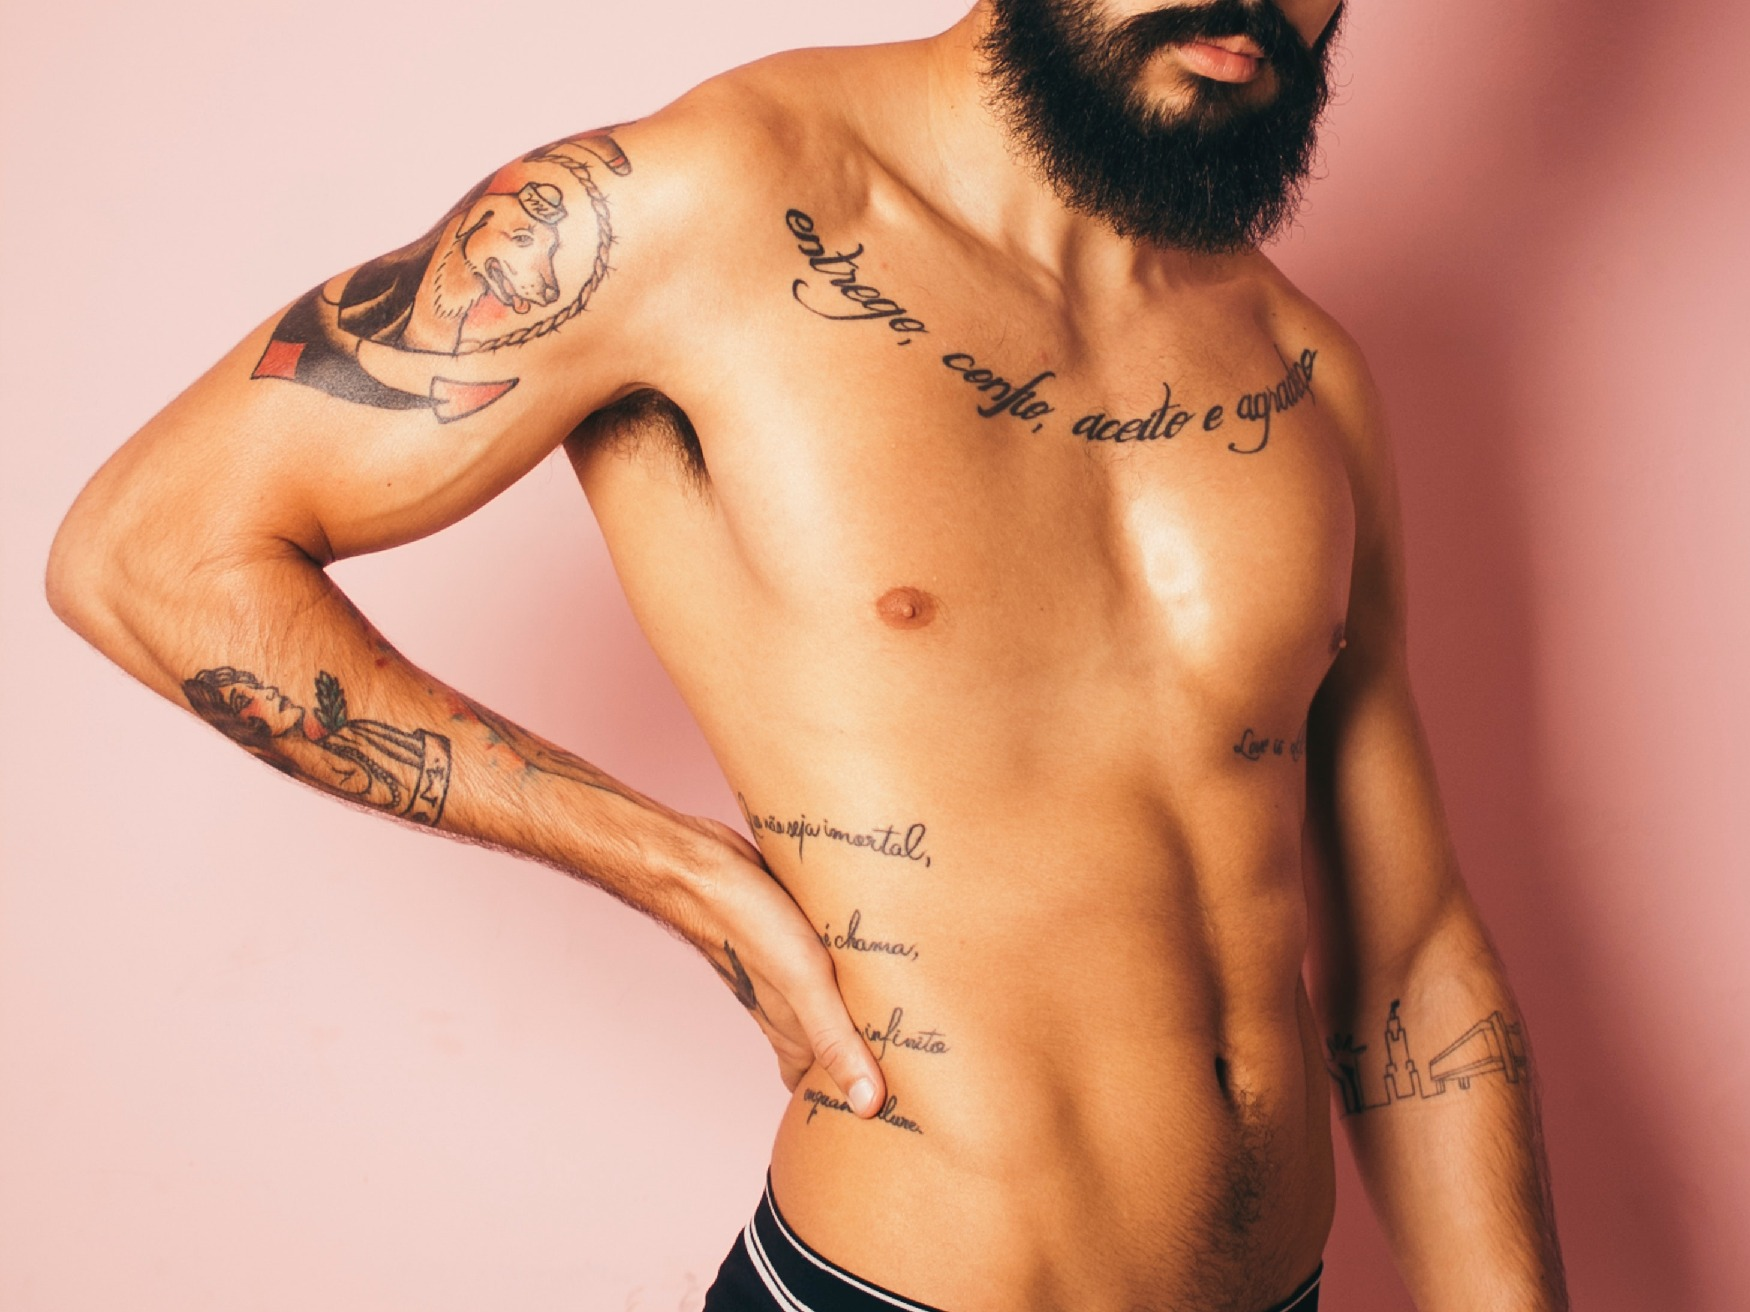 A bearded, tattooed man, with one hand on his waist